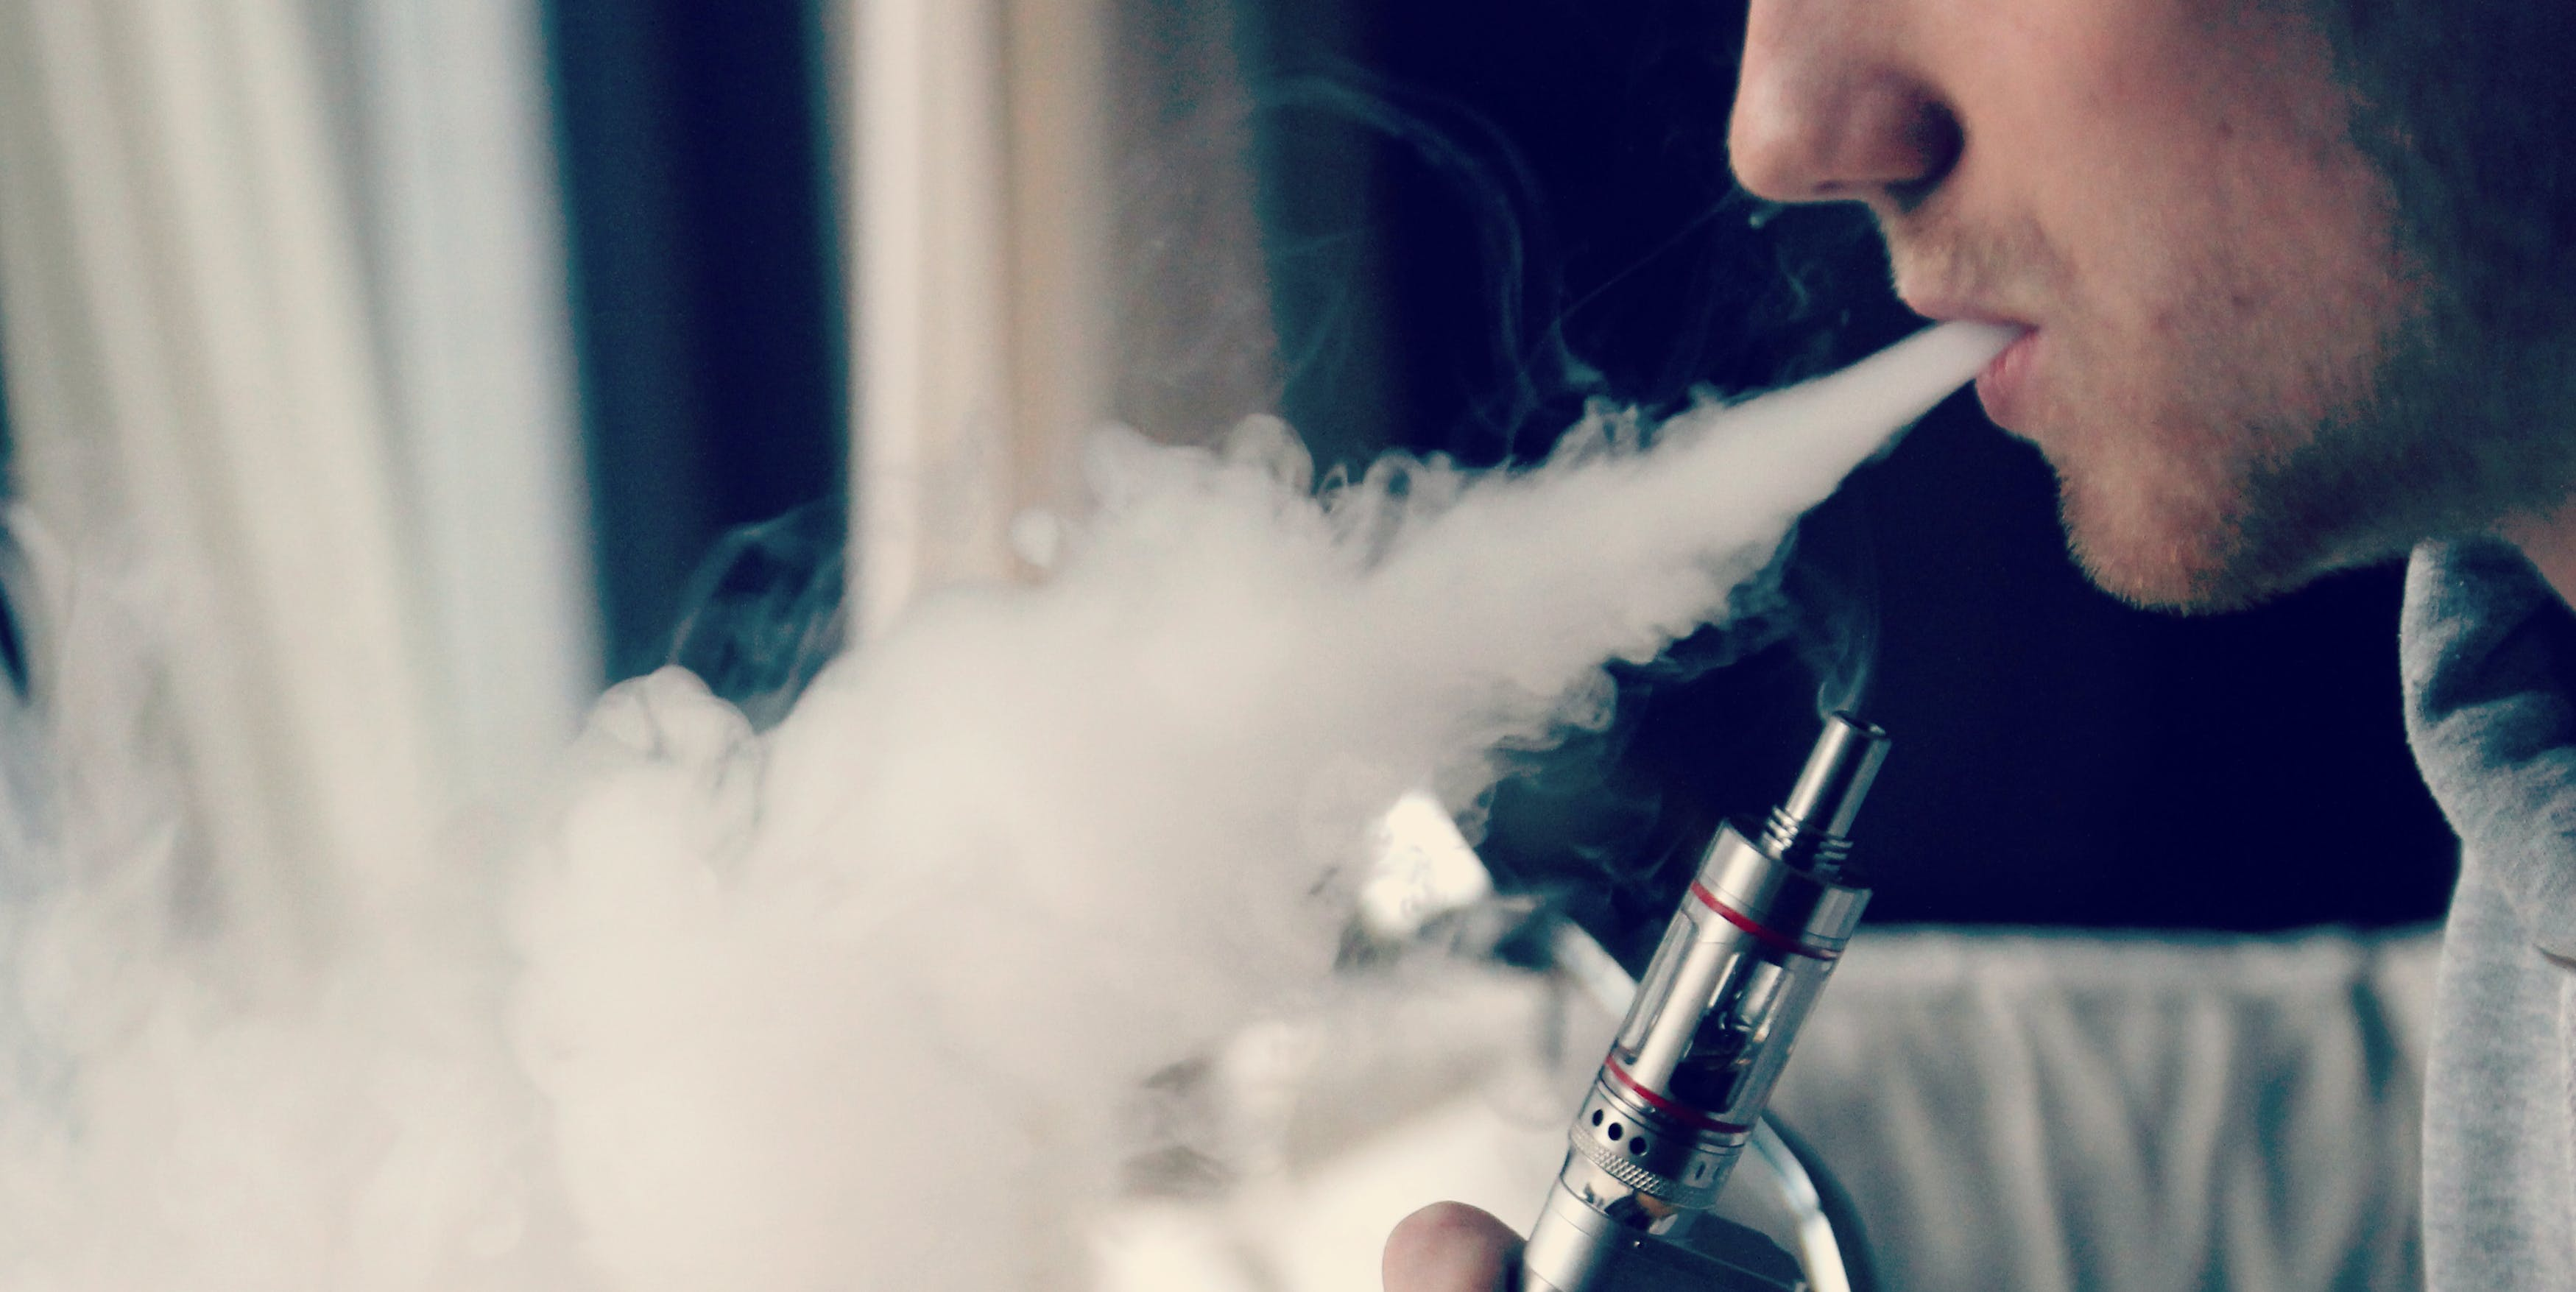 Vaping may reduce your cough.